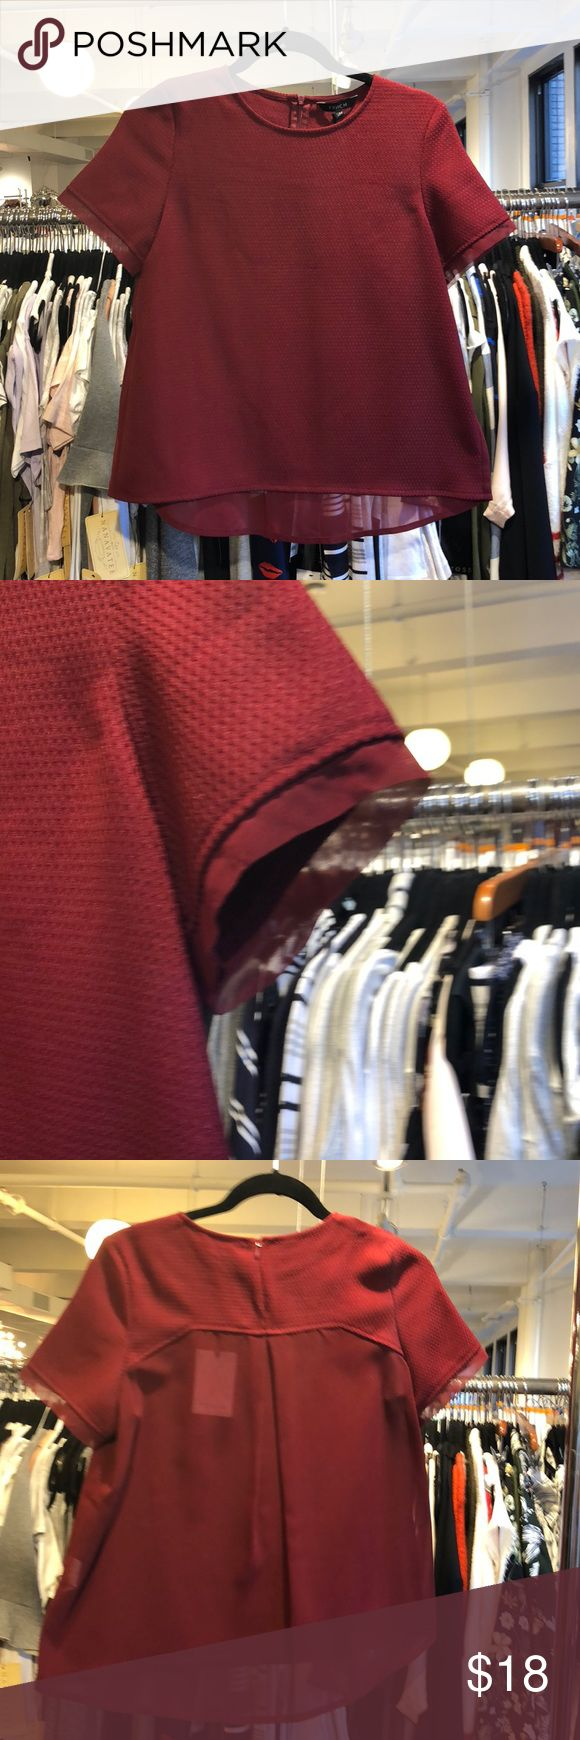 NWT brick red blouse Sheer in the back and she detailing on the sleeve Tops Blouses